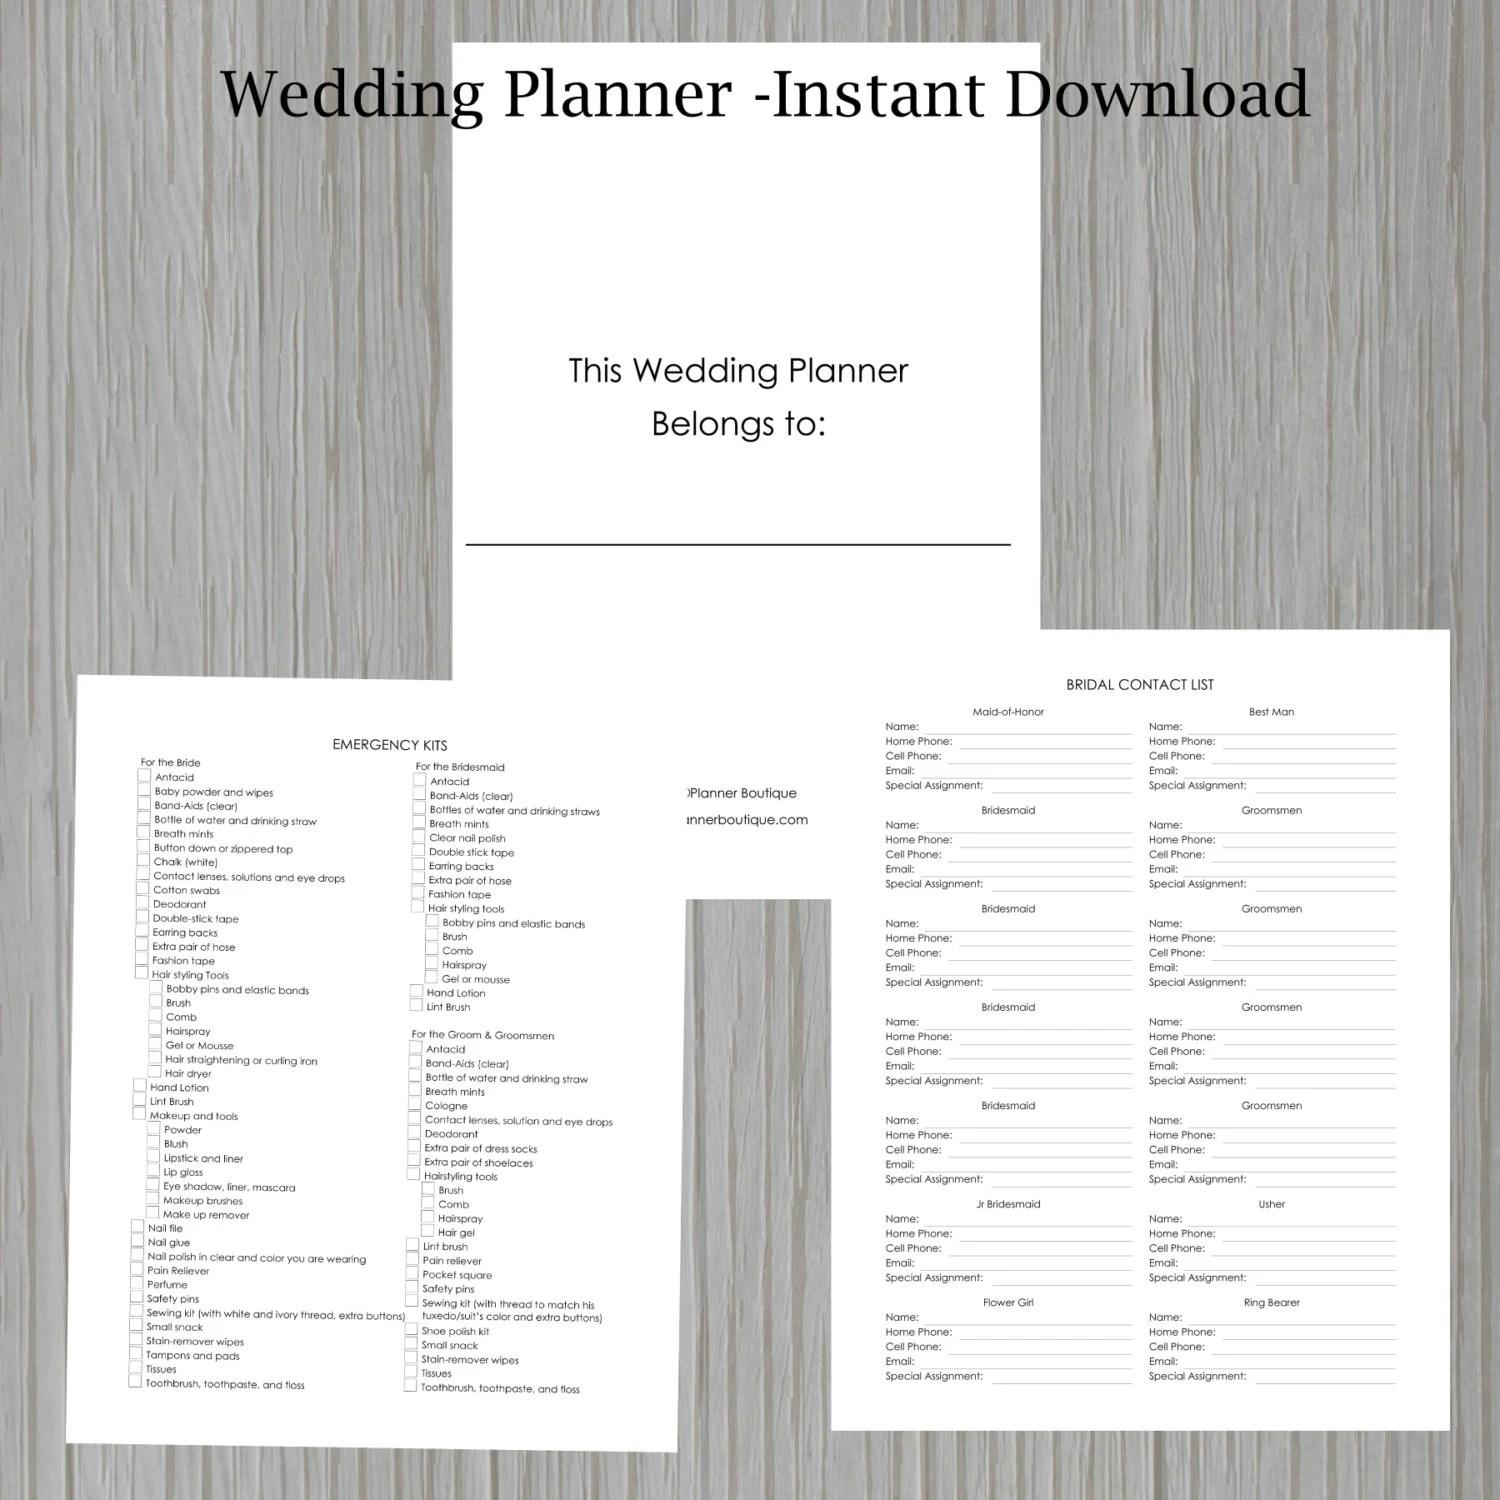 Wedding Planner Instant Download